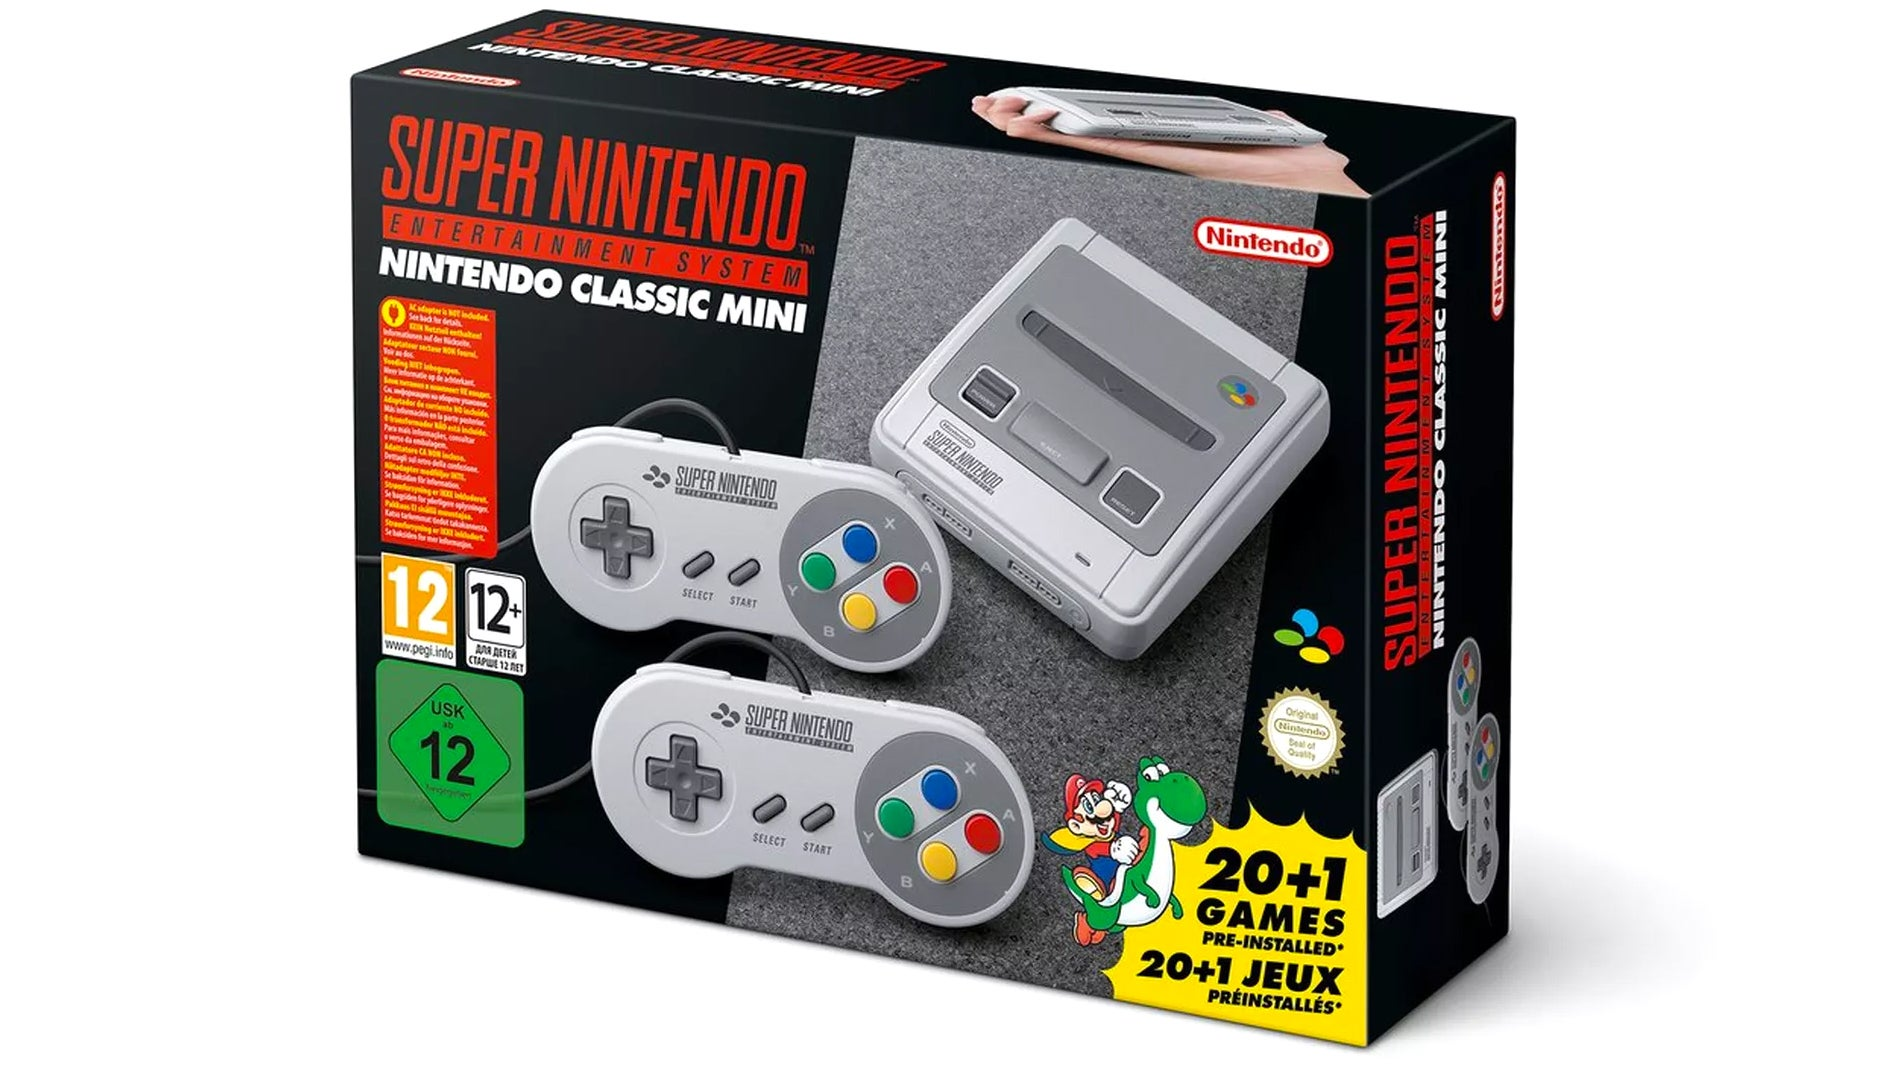 Super Nintendo Classic Edition available September 29, 2017